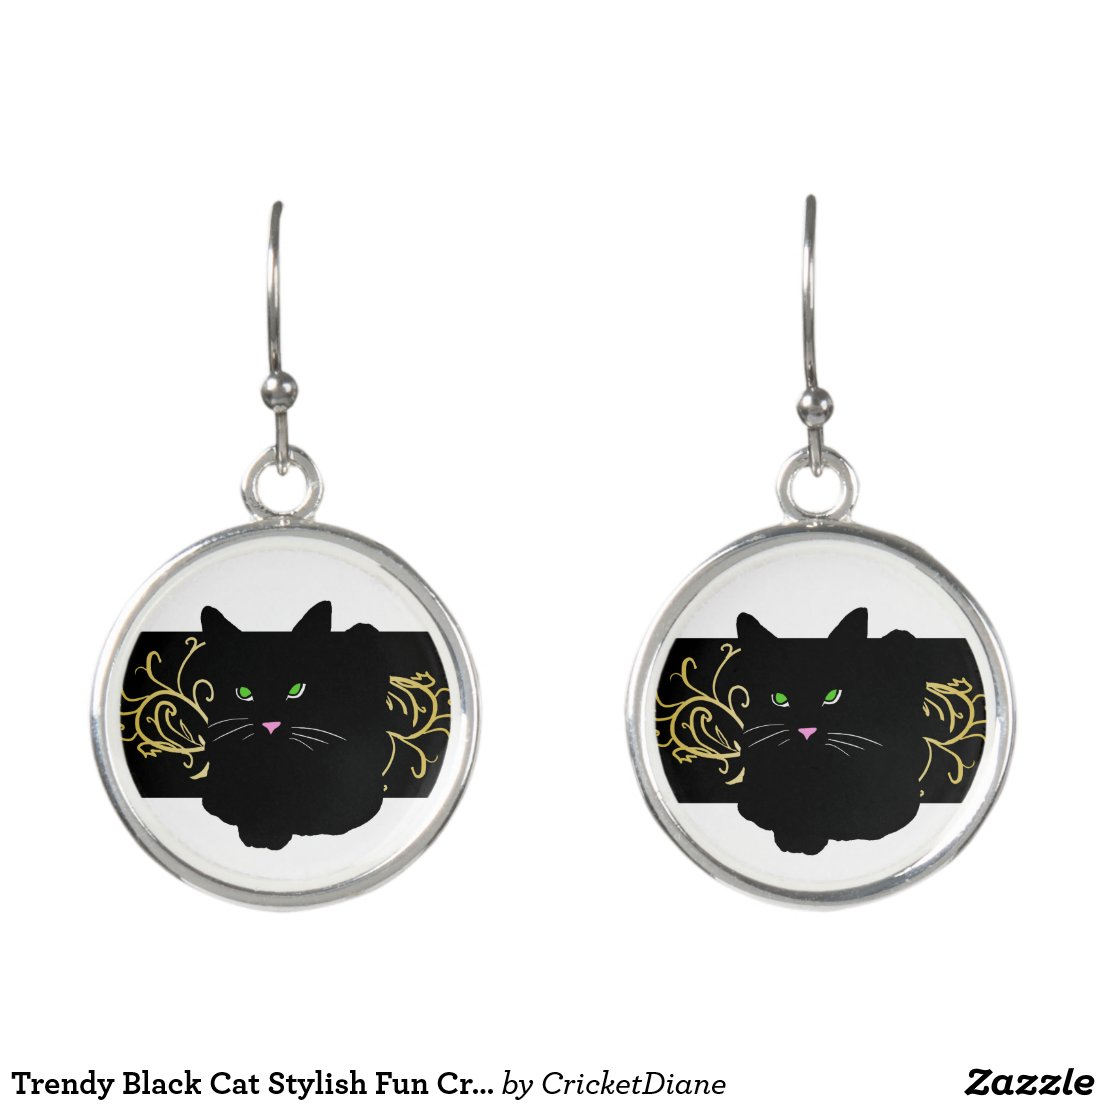 Trendy Black Cat Stylish Fun CricketDiane Earrings